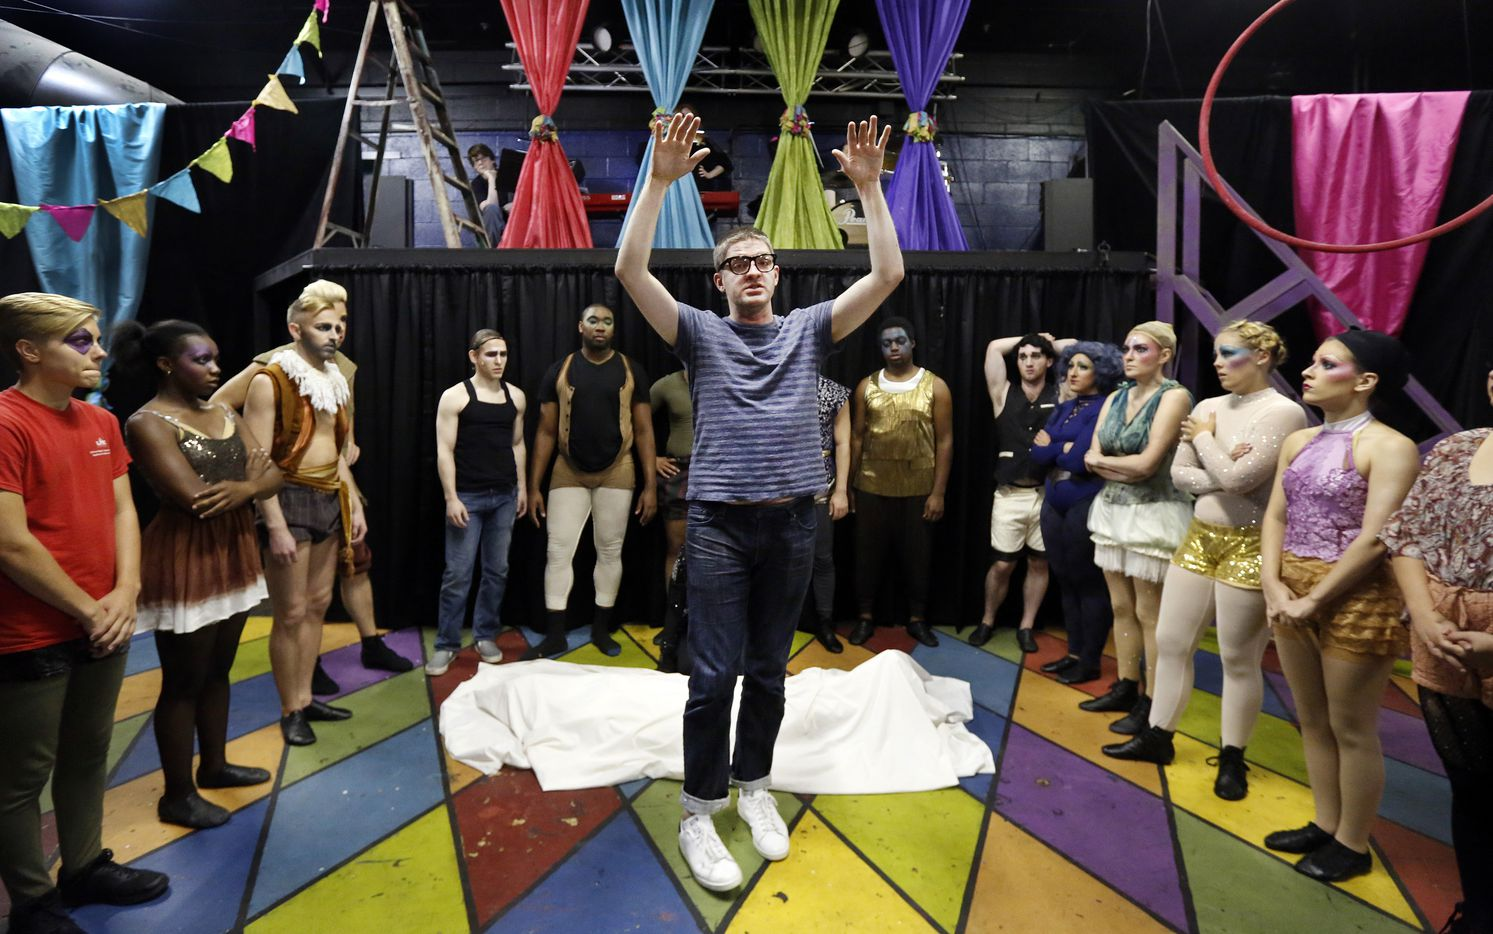 Director Derek Whitener explains to the cast how the levitation of the body will take place during a rehearsal.